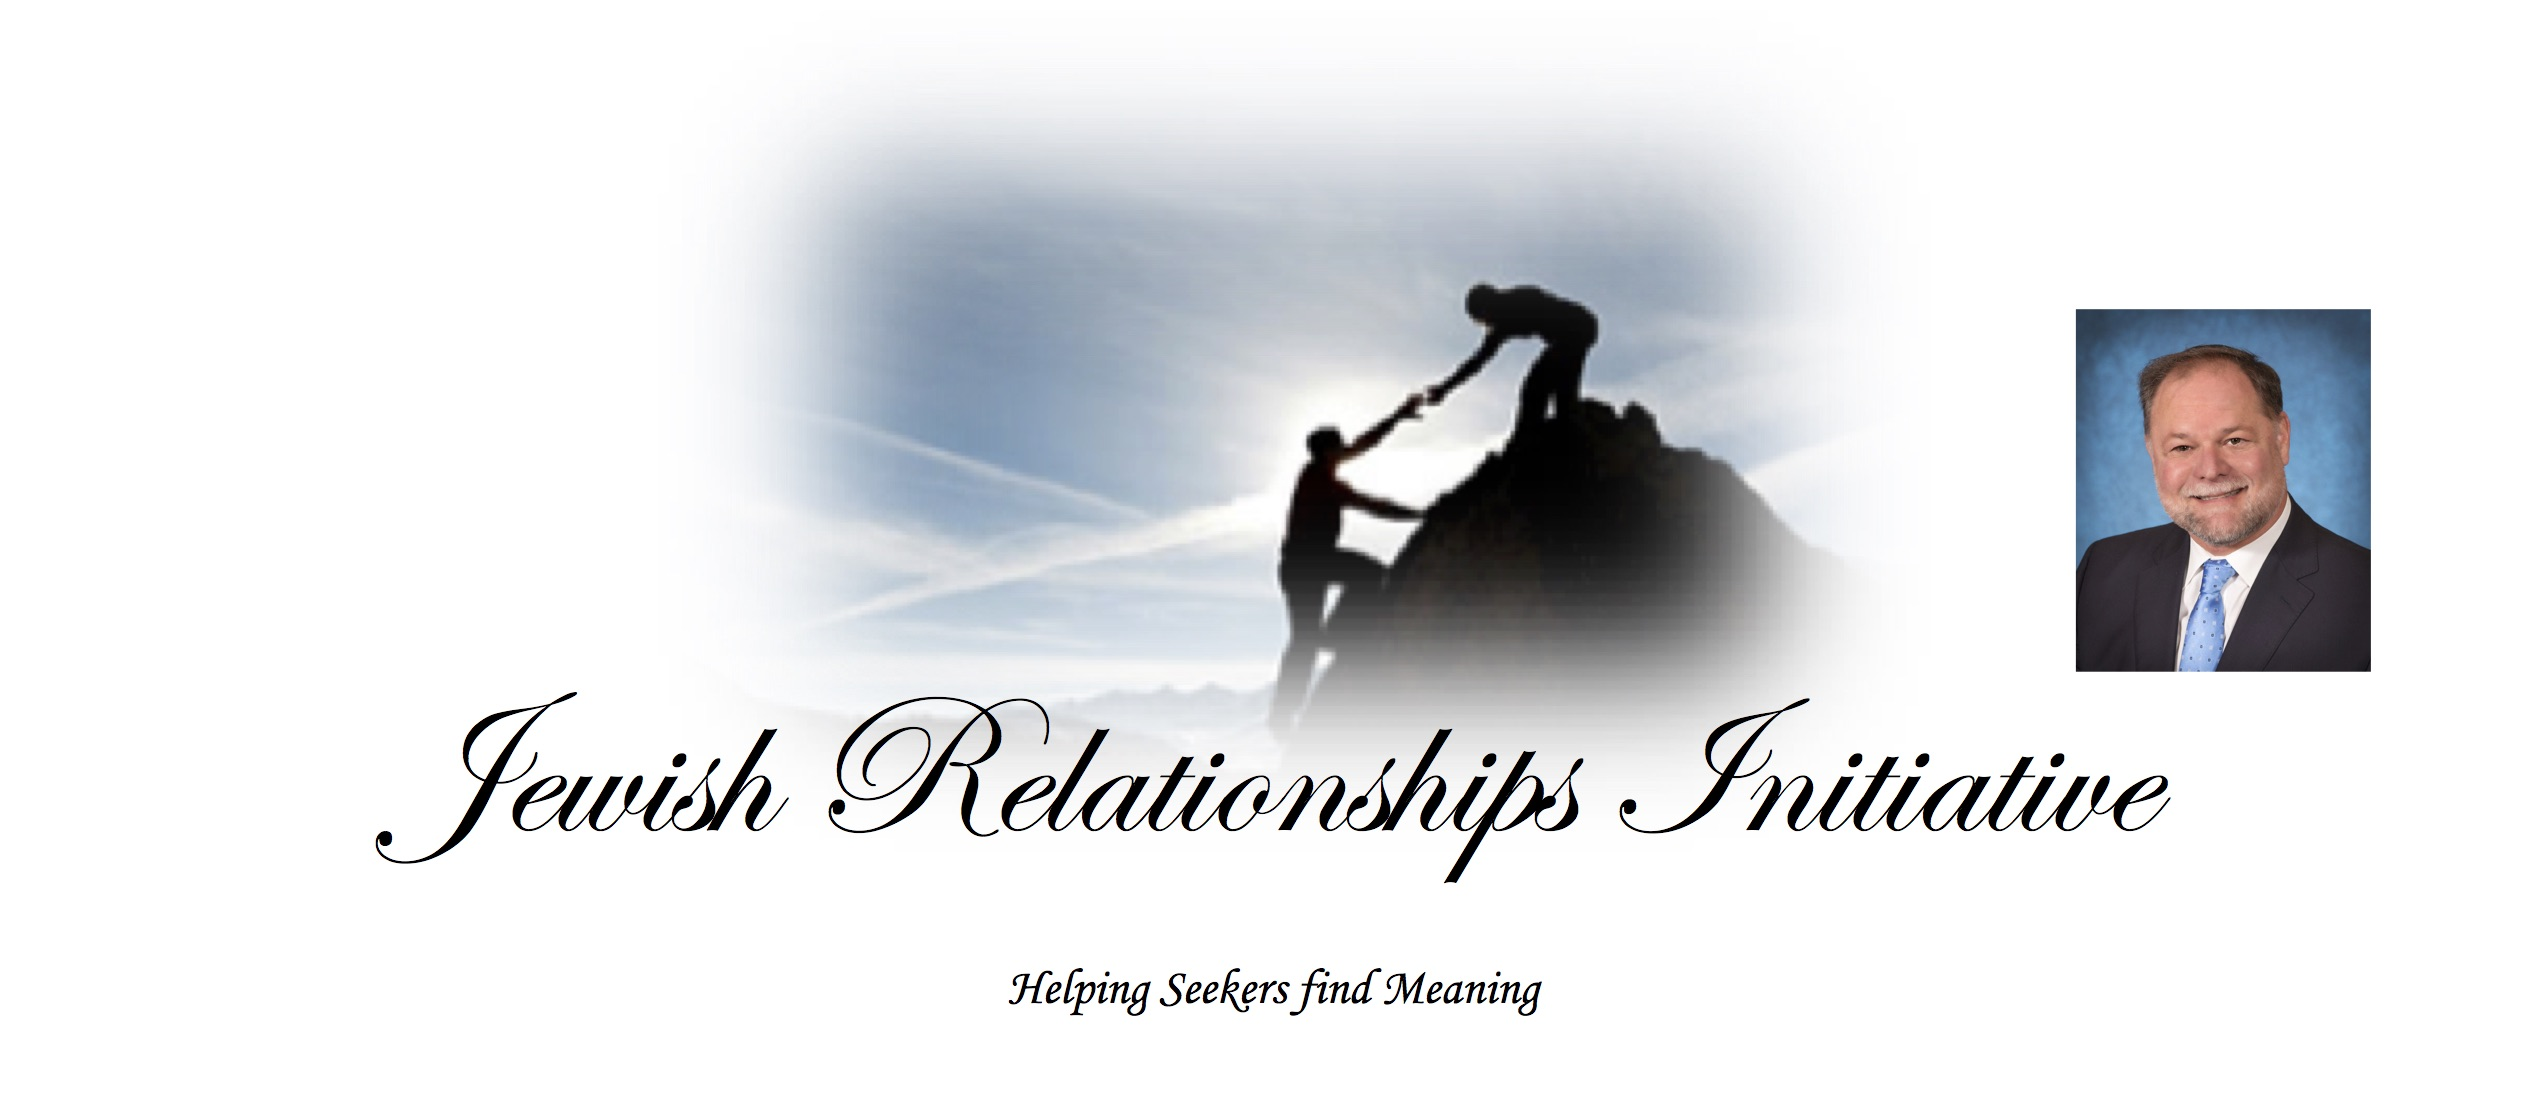 Jewish Relationships Initiative